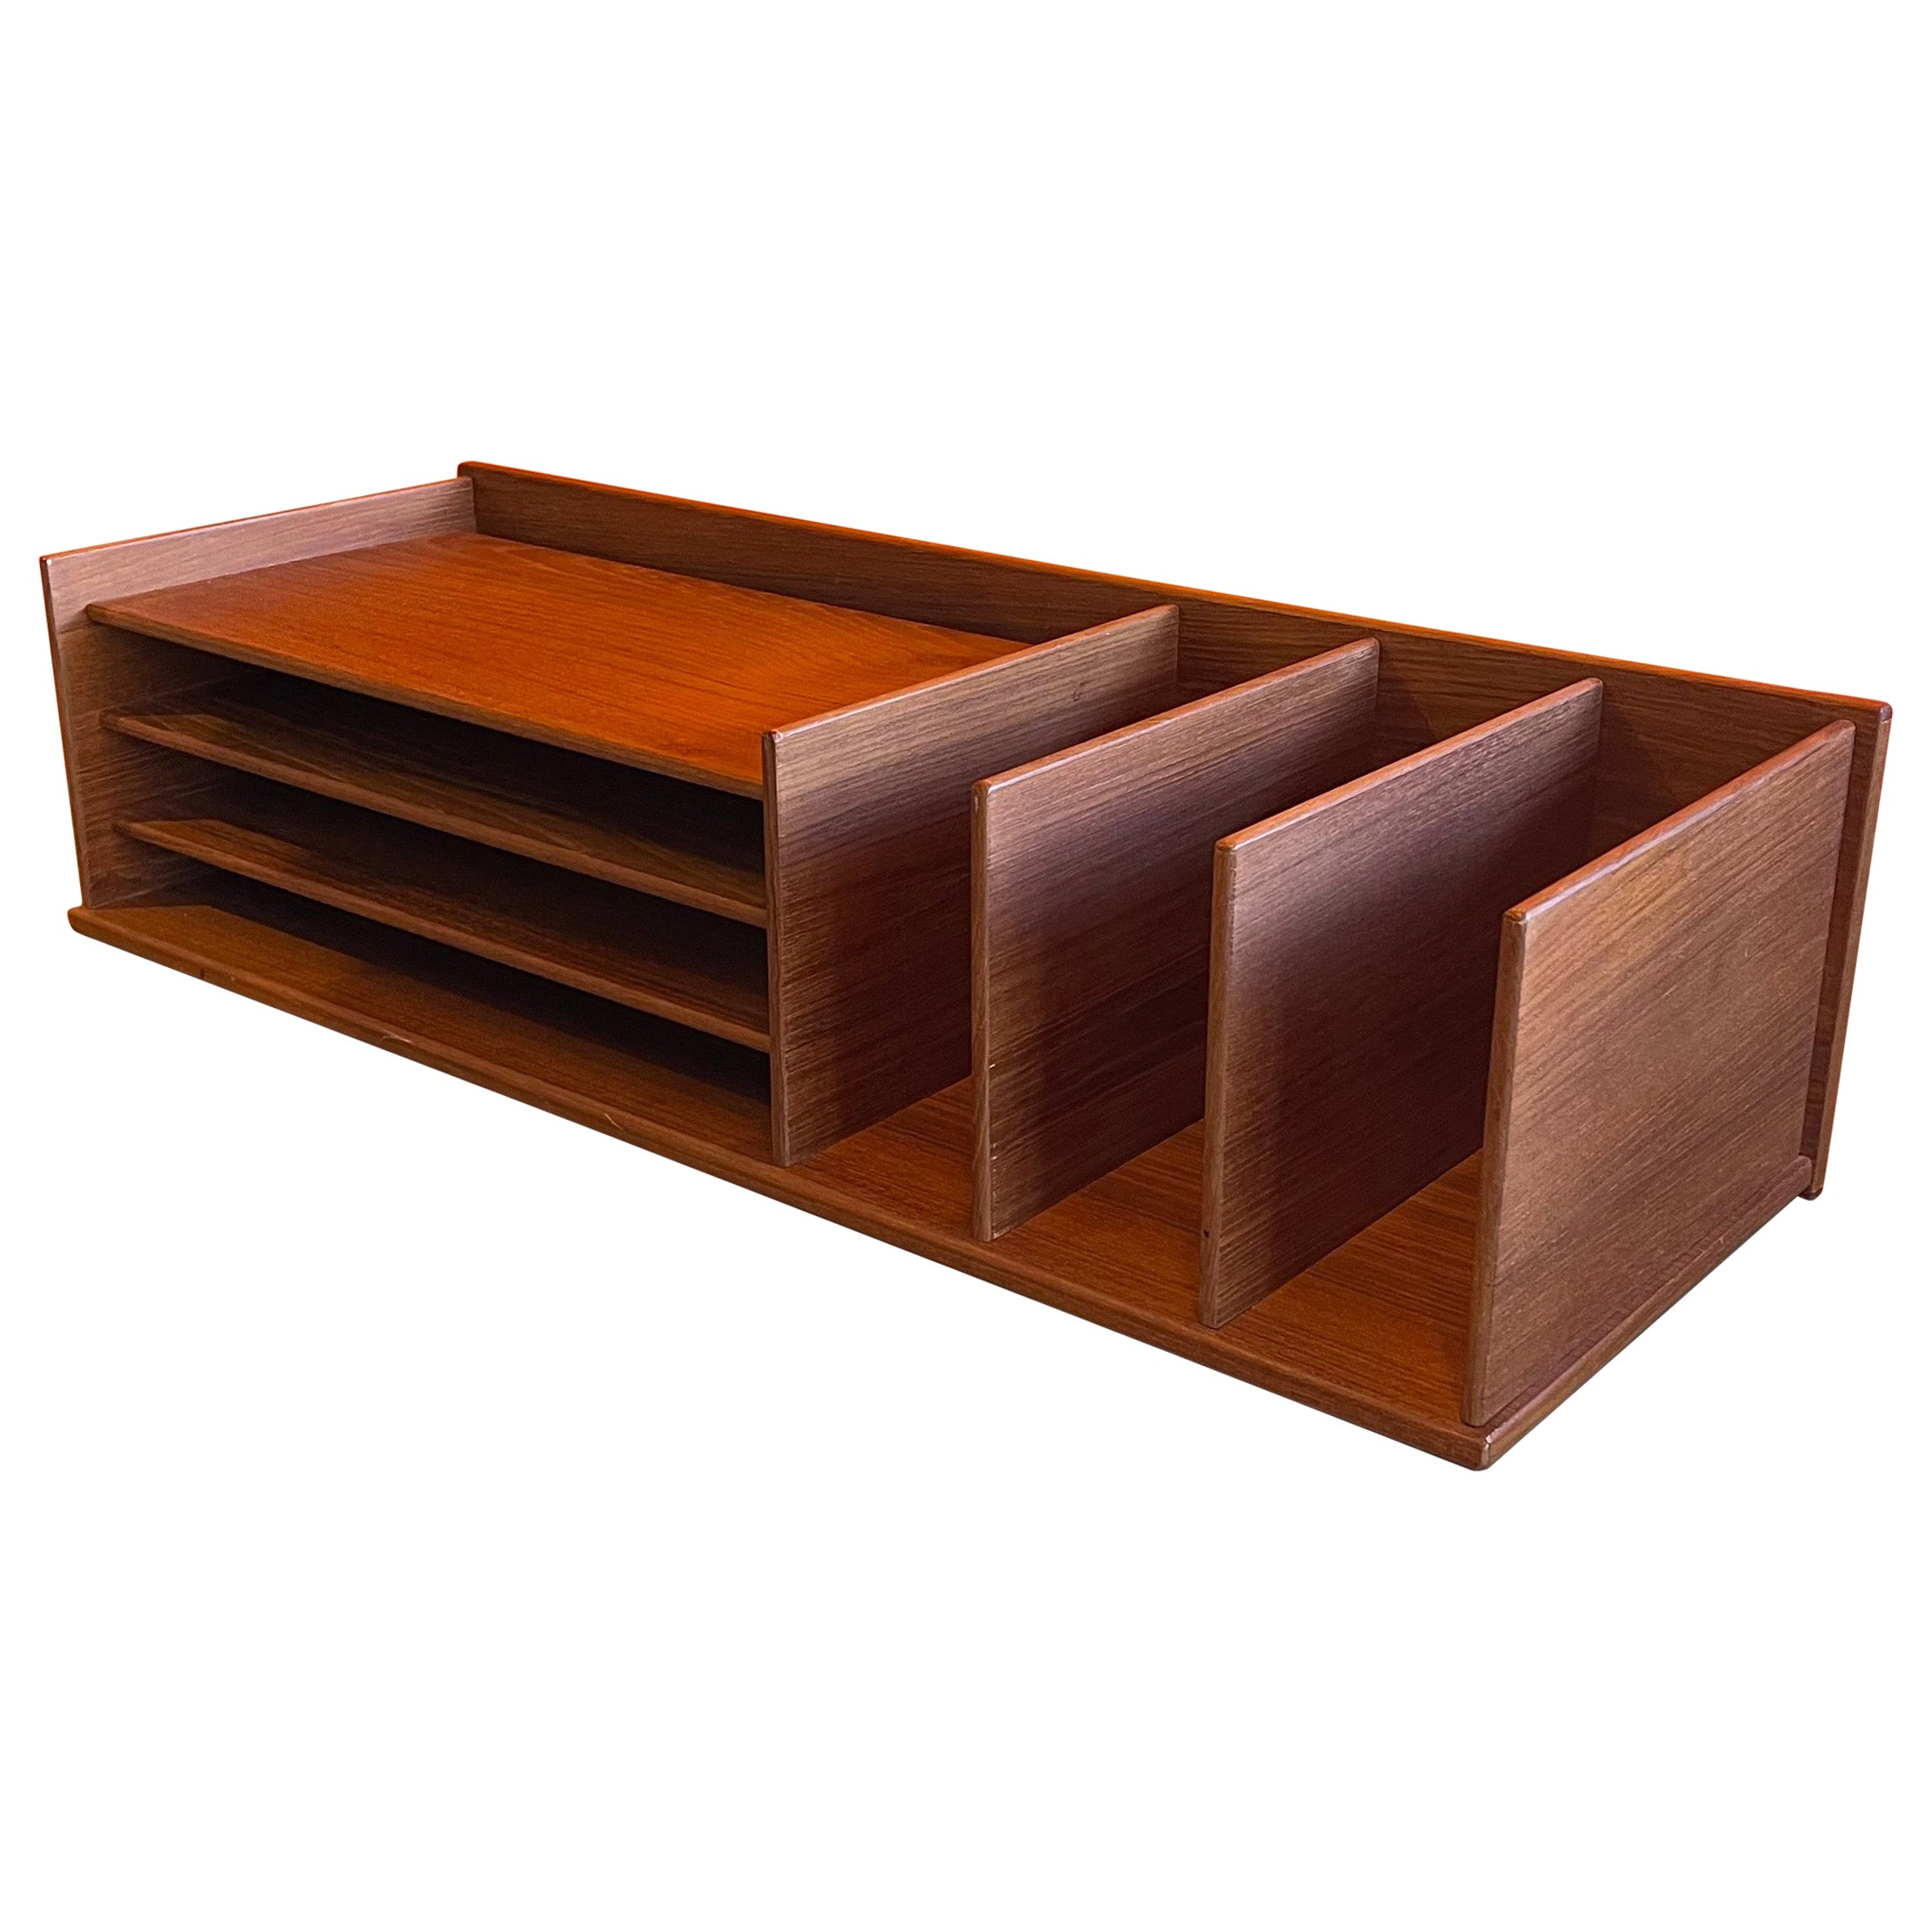 Danish Modern Desk Organizer Letter Tray in Teak by Georg Petersens Møbelfabrik